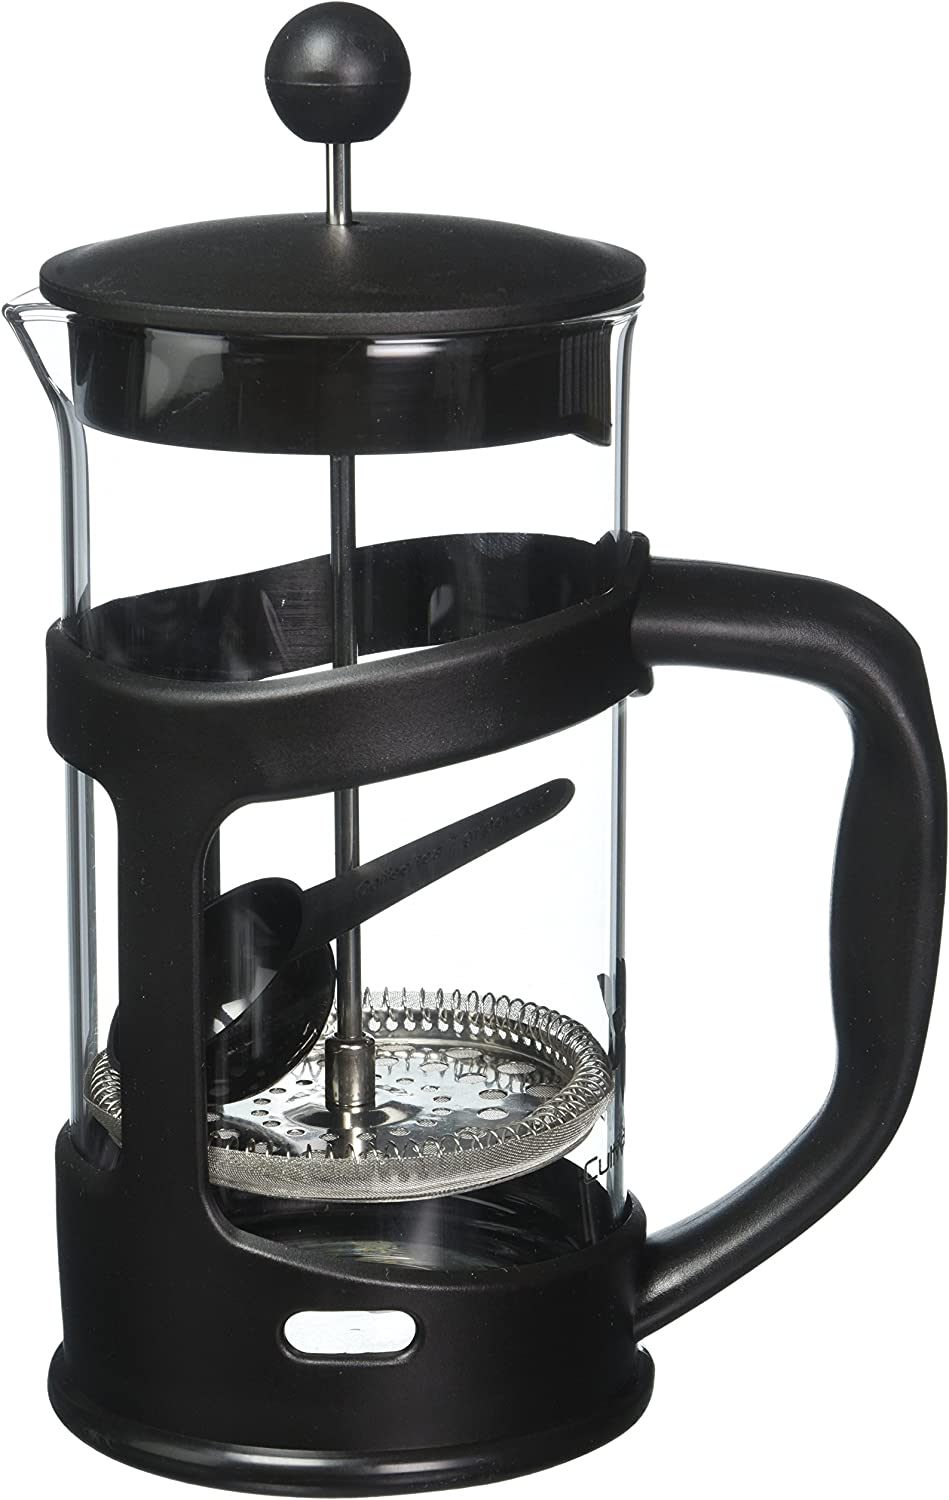 Cultiva Kitchen French Press Coffeemaker 34 Ounce Des Cheap sale Stylish Popularity